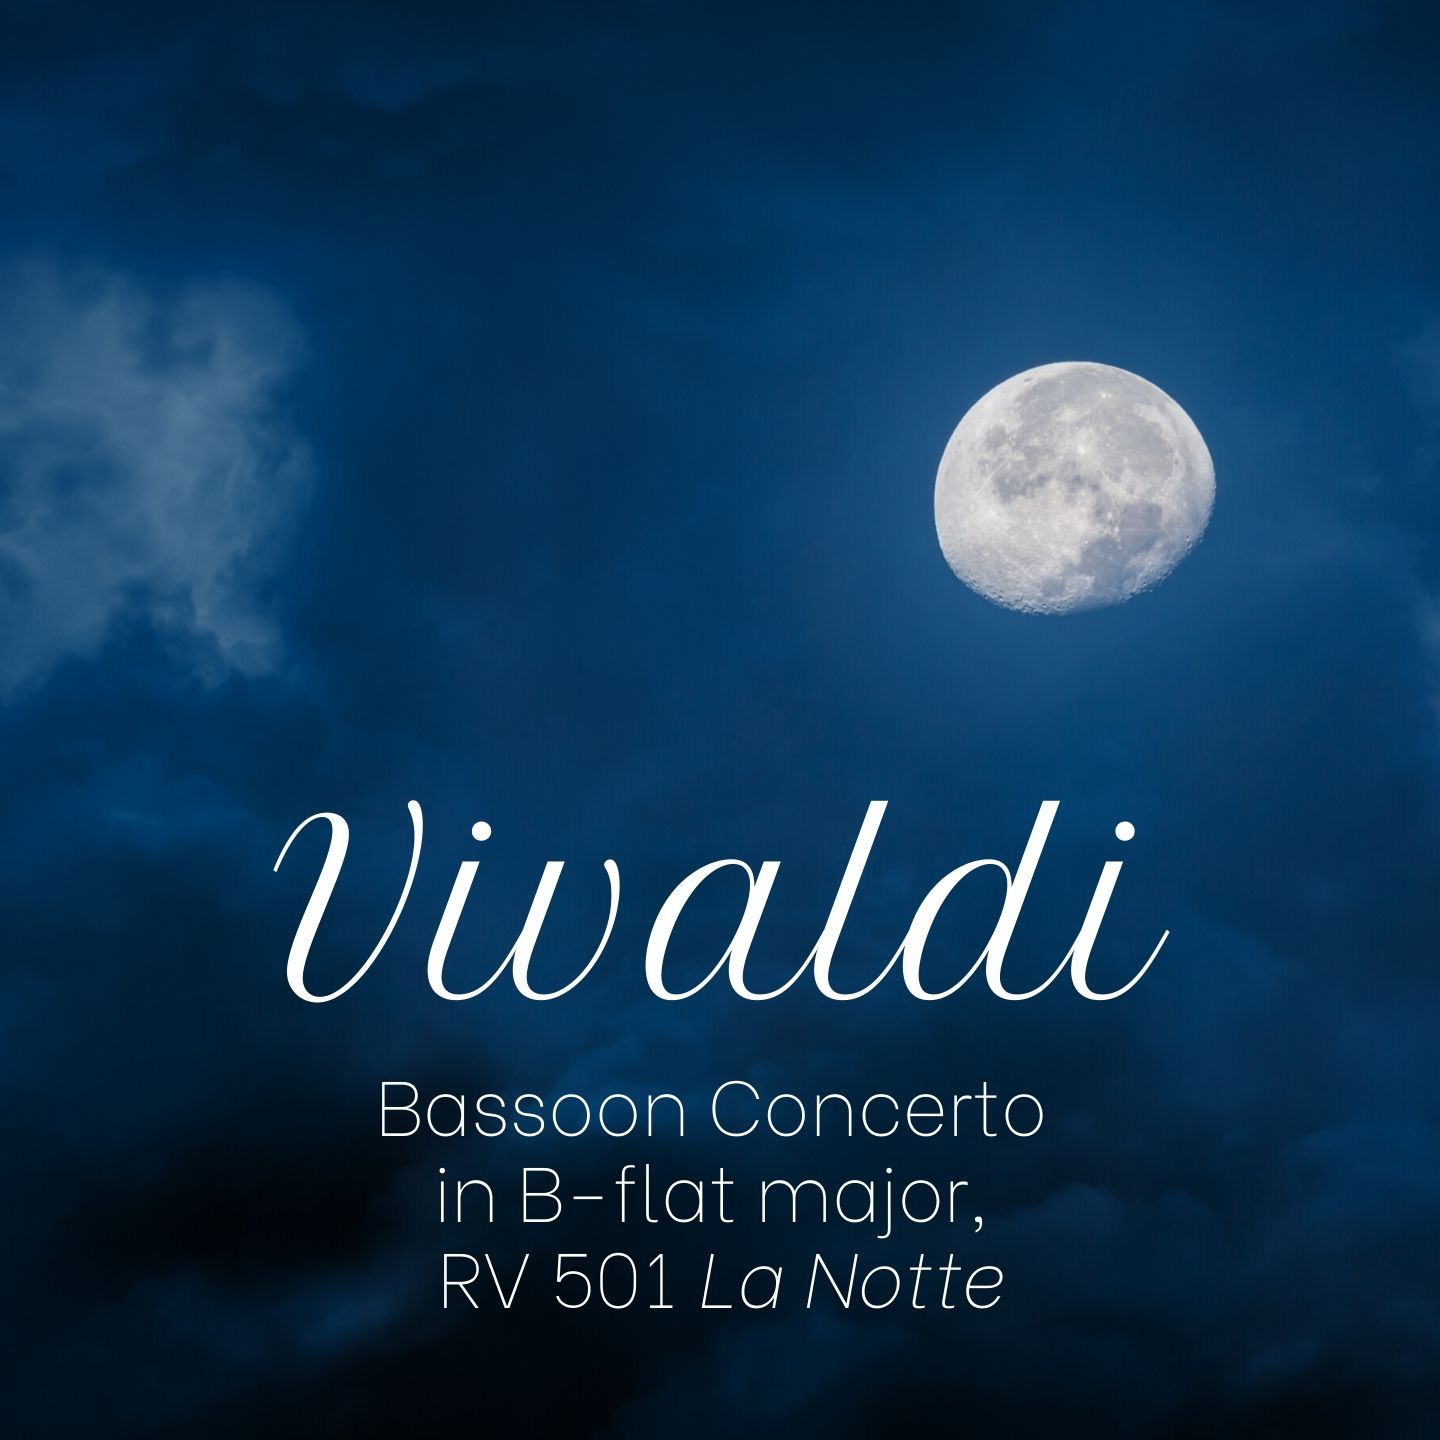 Vivaldi: Bassoon Concerto in B-flat major, RV 501